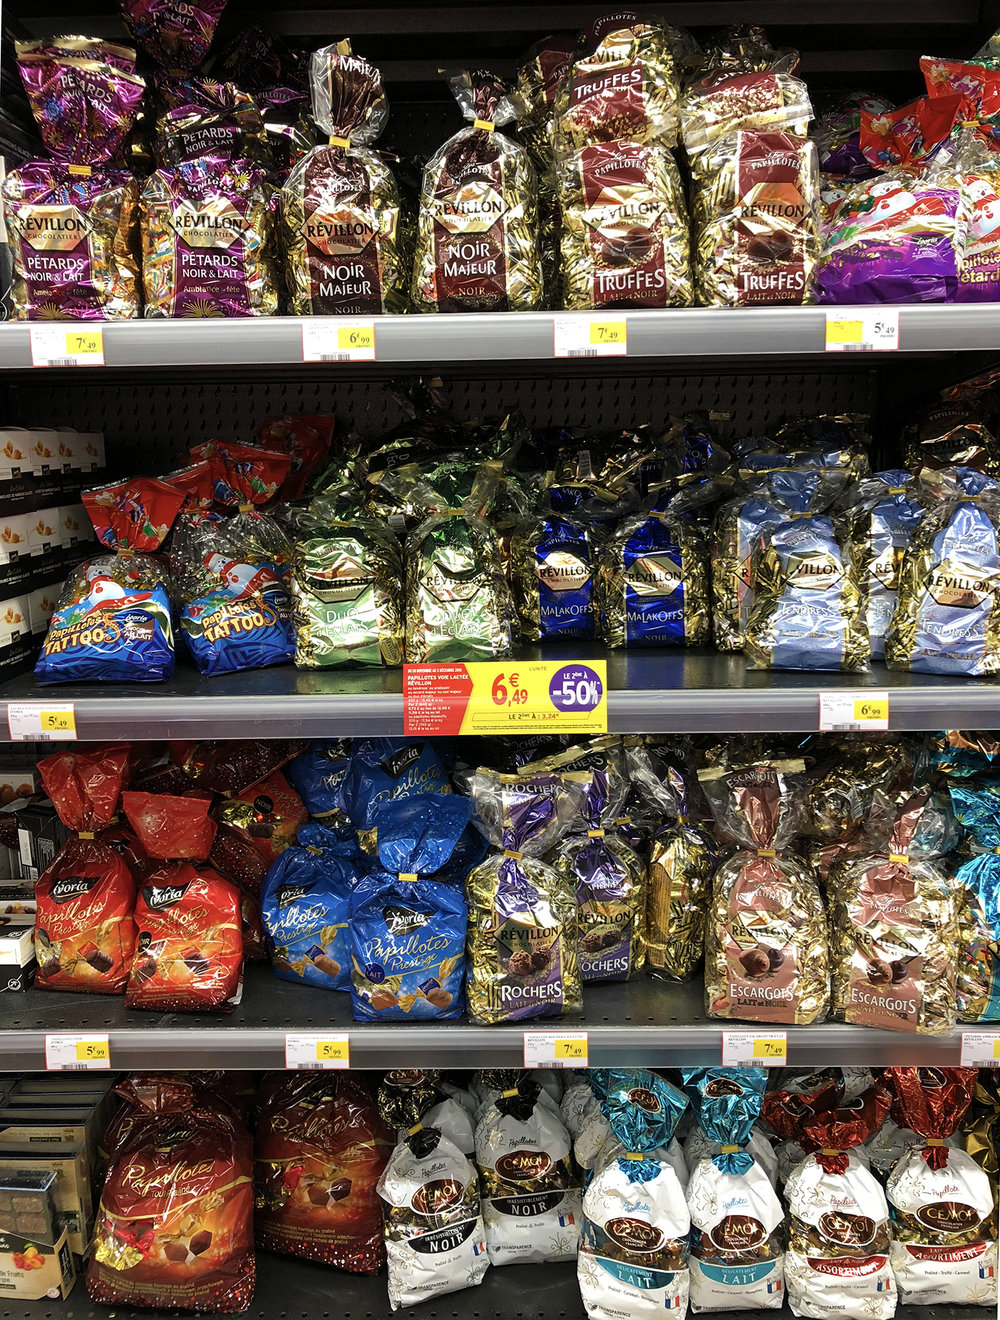 Papillotes! So many choices…